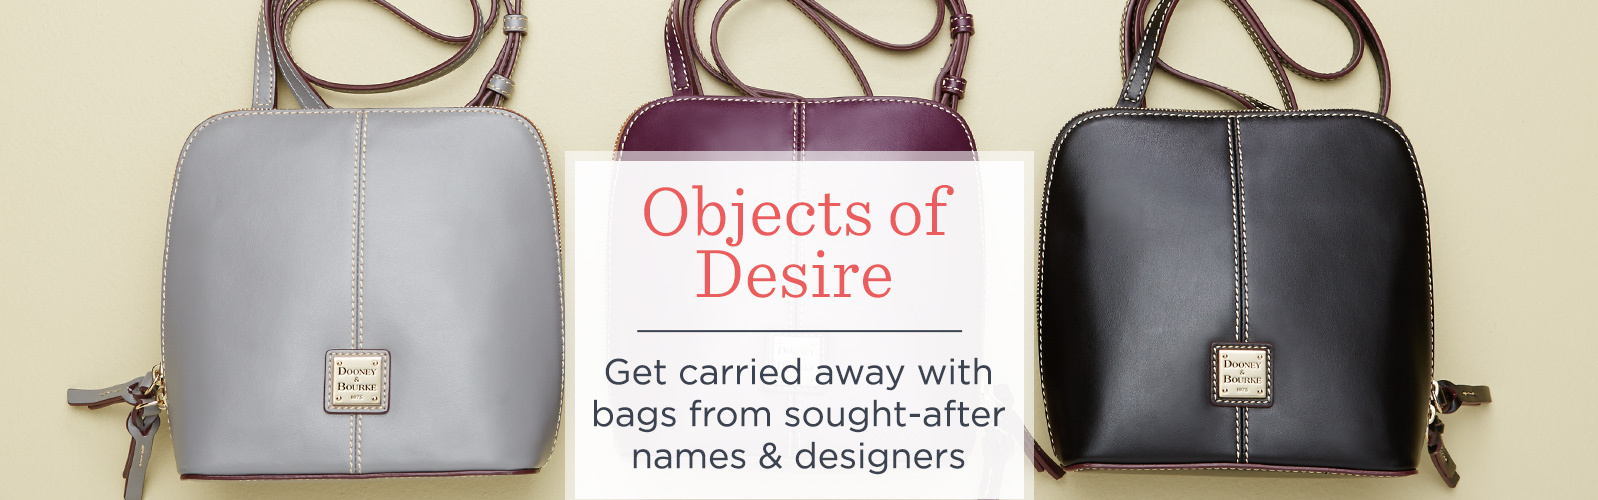 Objects of Desire  Get carried away with bags from sought-after names & designers